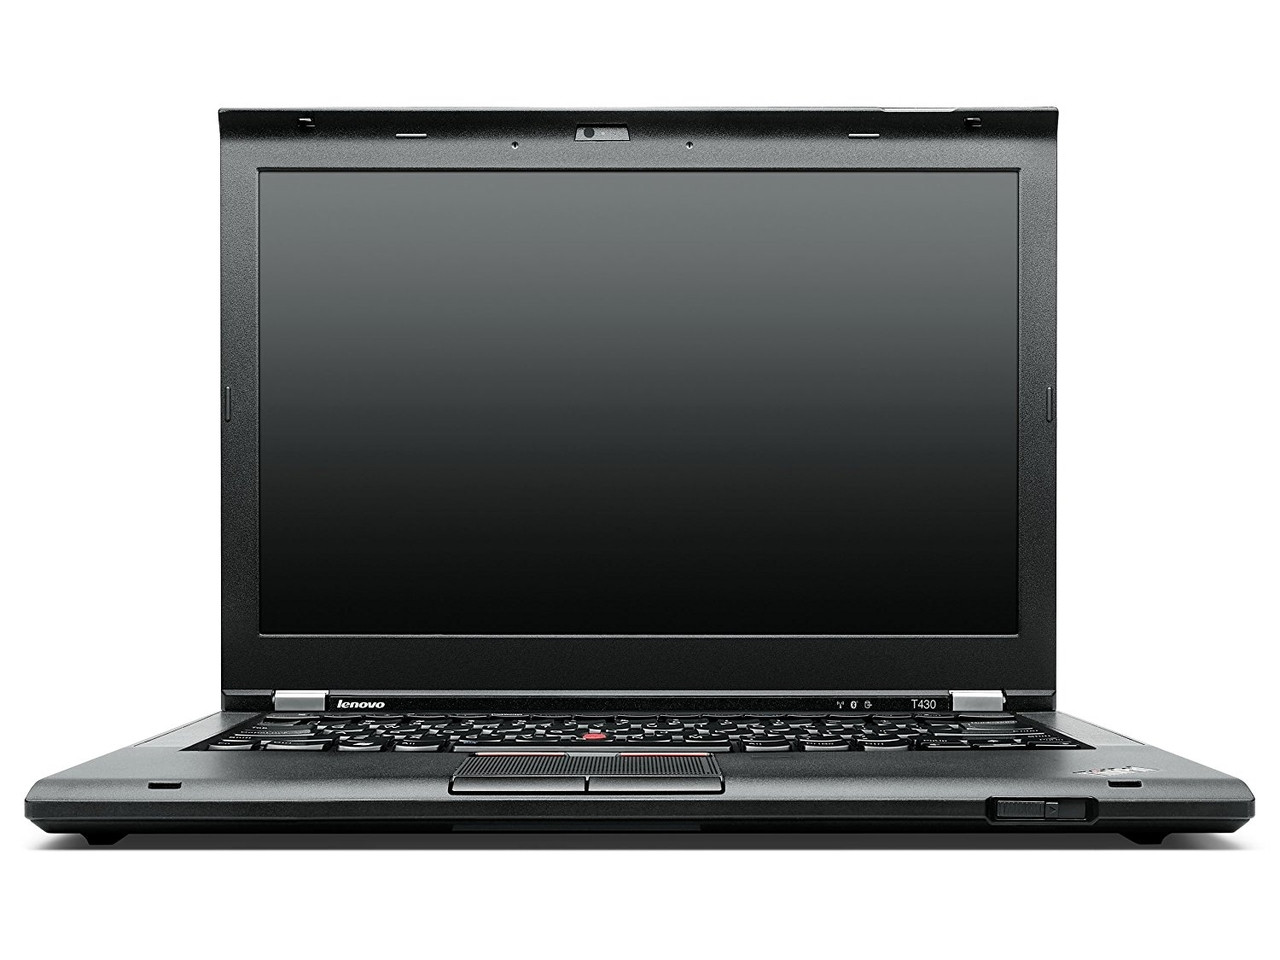 IBM Lenovo Thinkpad T430 Laptop Core i5 2.90GHz, 4GB Ram, 320GB HDD, DVD-RW, Windows 10 Pro 64 Notebook